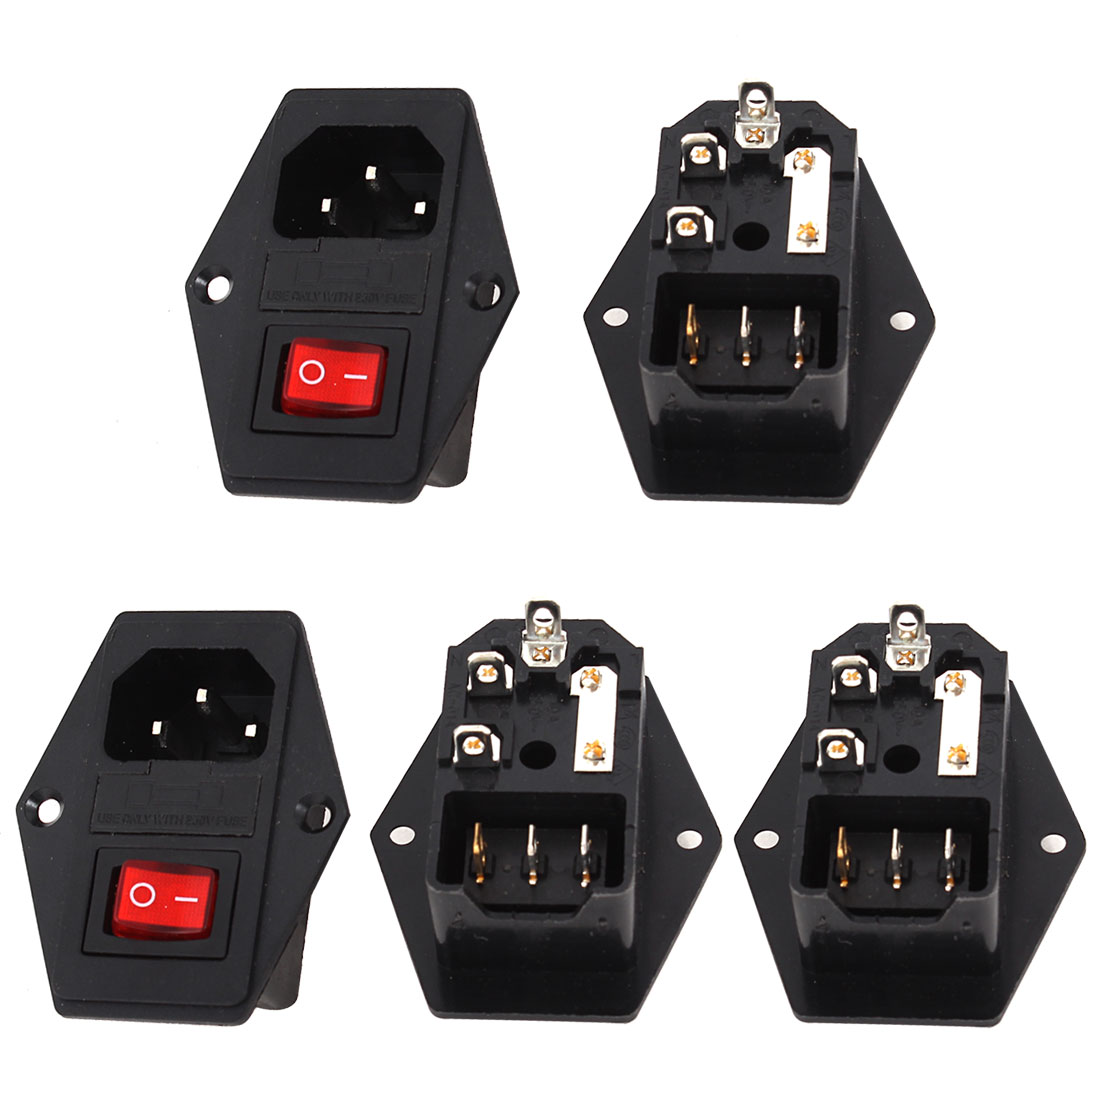 5pcs IEC320 C14 3 Terminals Switch Inlet Plug Fuse Holder Male Power Socket AC 10A 250V